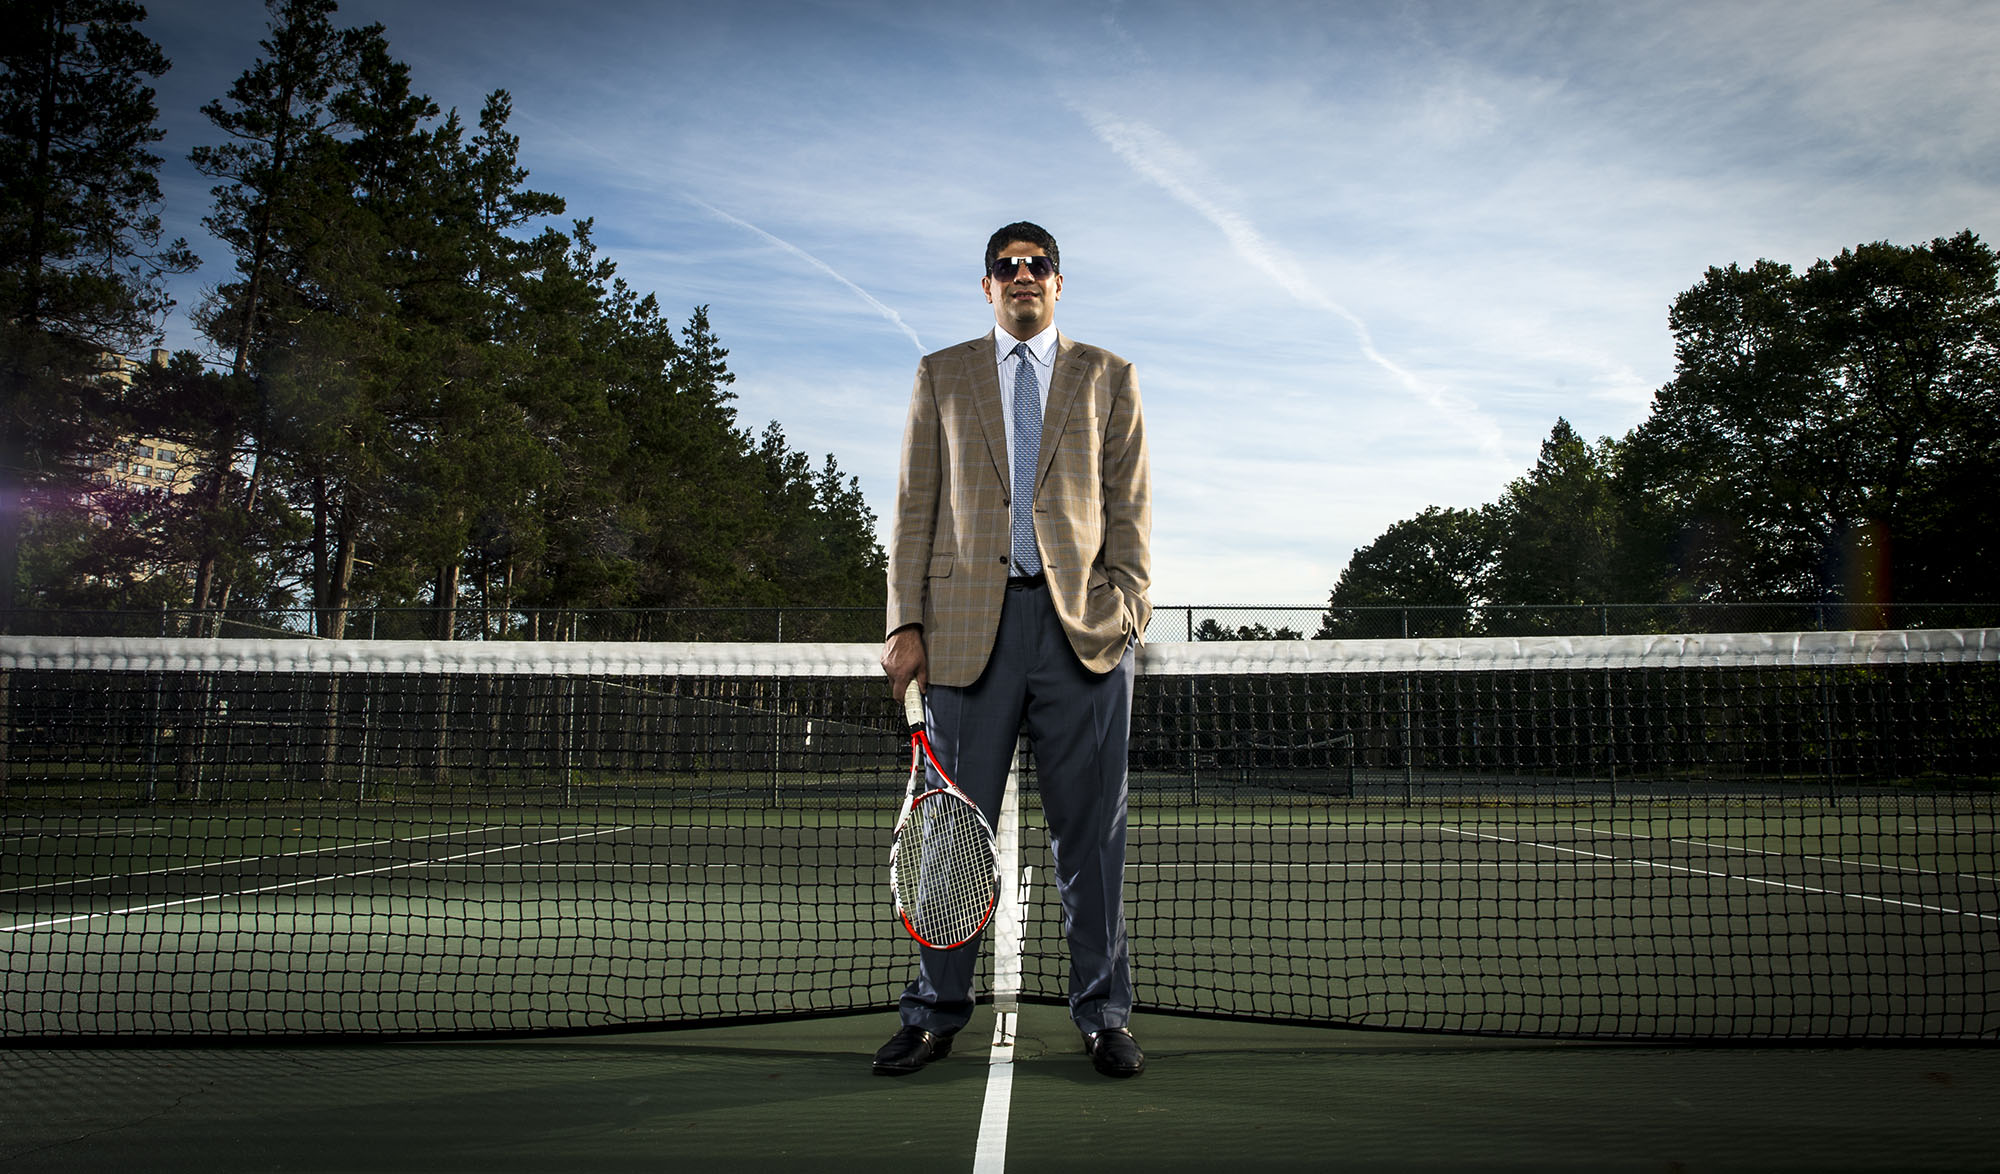 Cardiologist Dr. Ramzan M. Zakir MD is an avid Tennis player. He is photographed at Buccleuch Park in New Brunswick, NJ for Saint Peter's University Hospital.